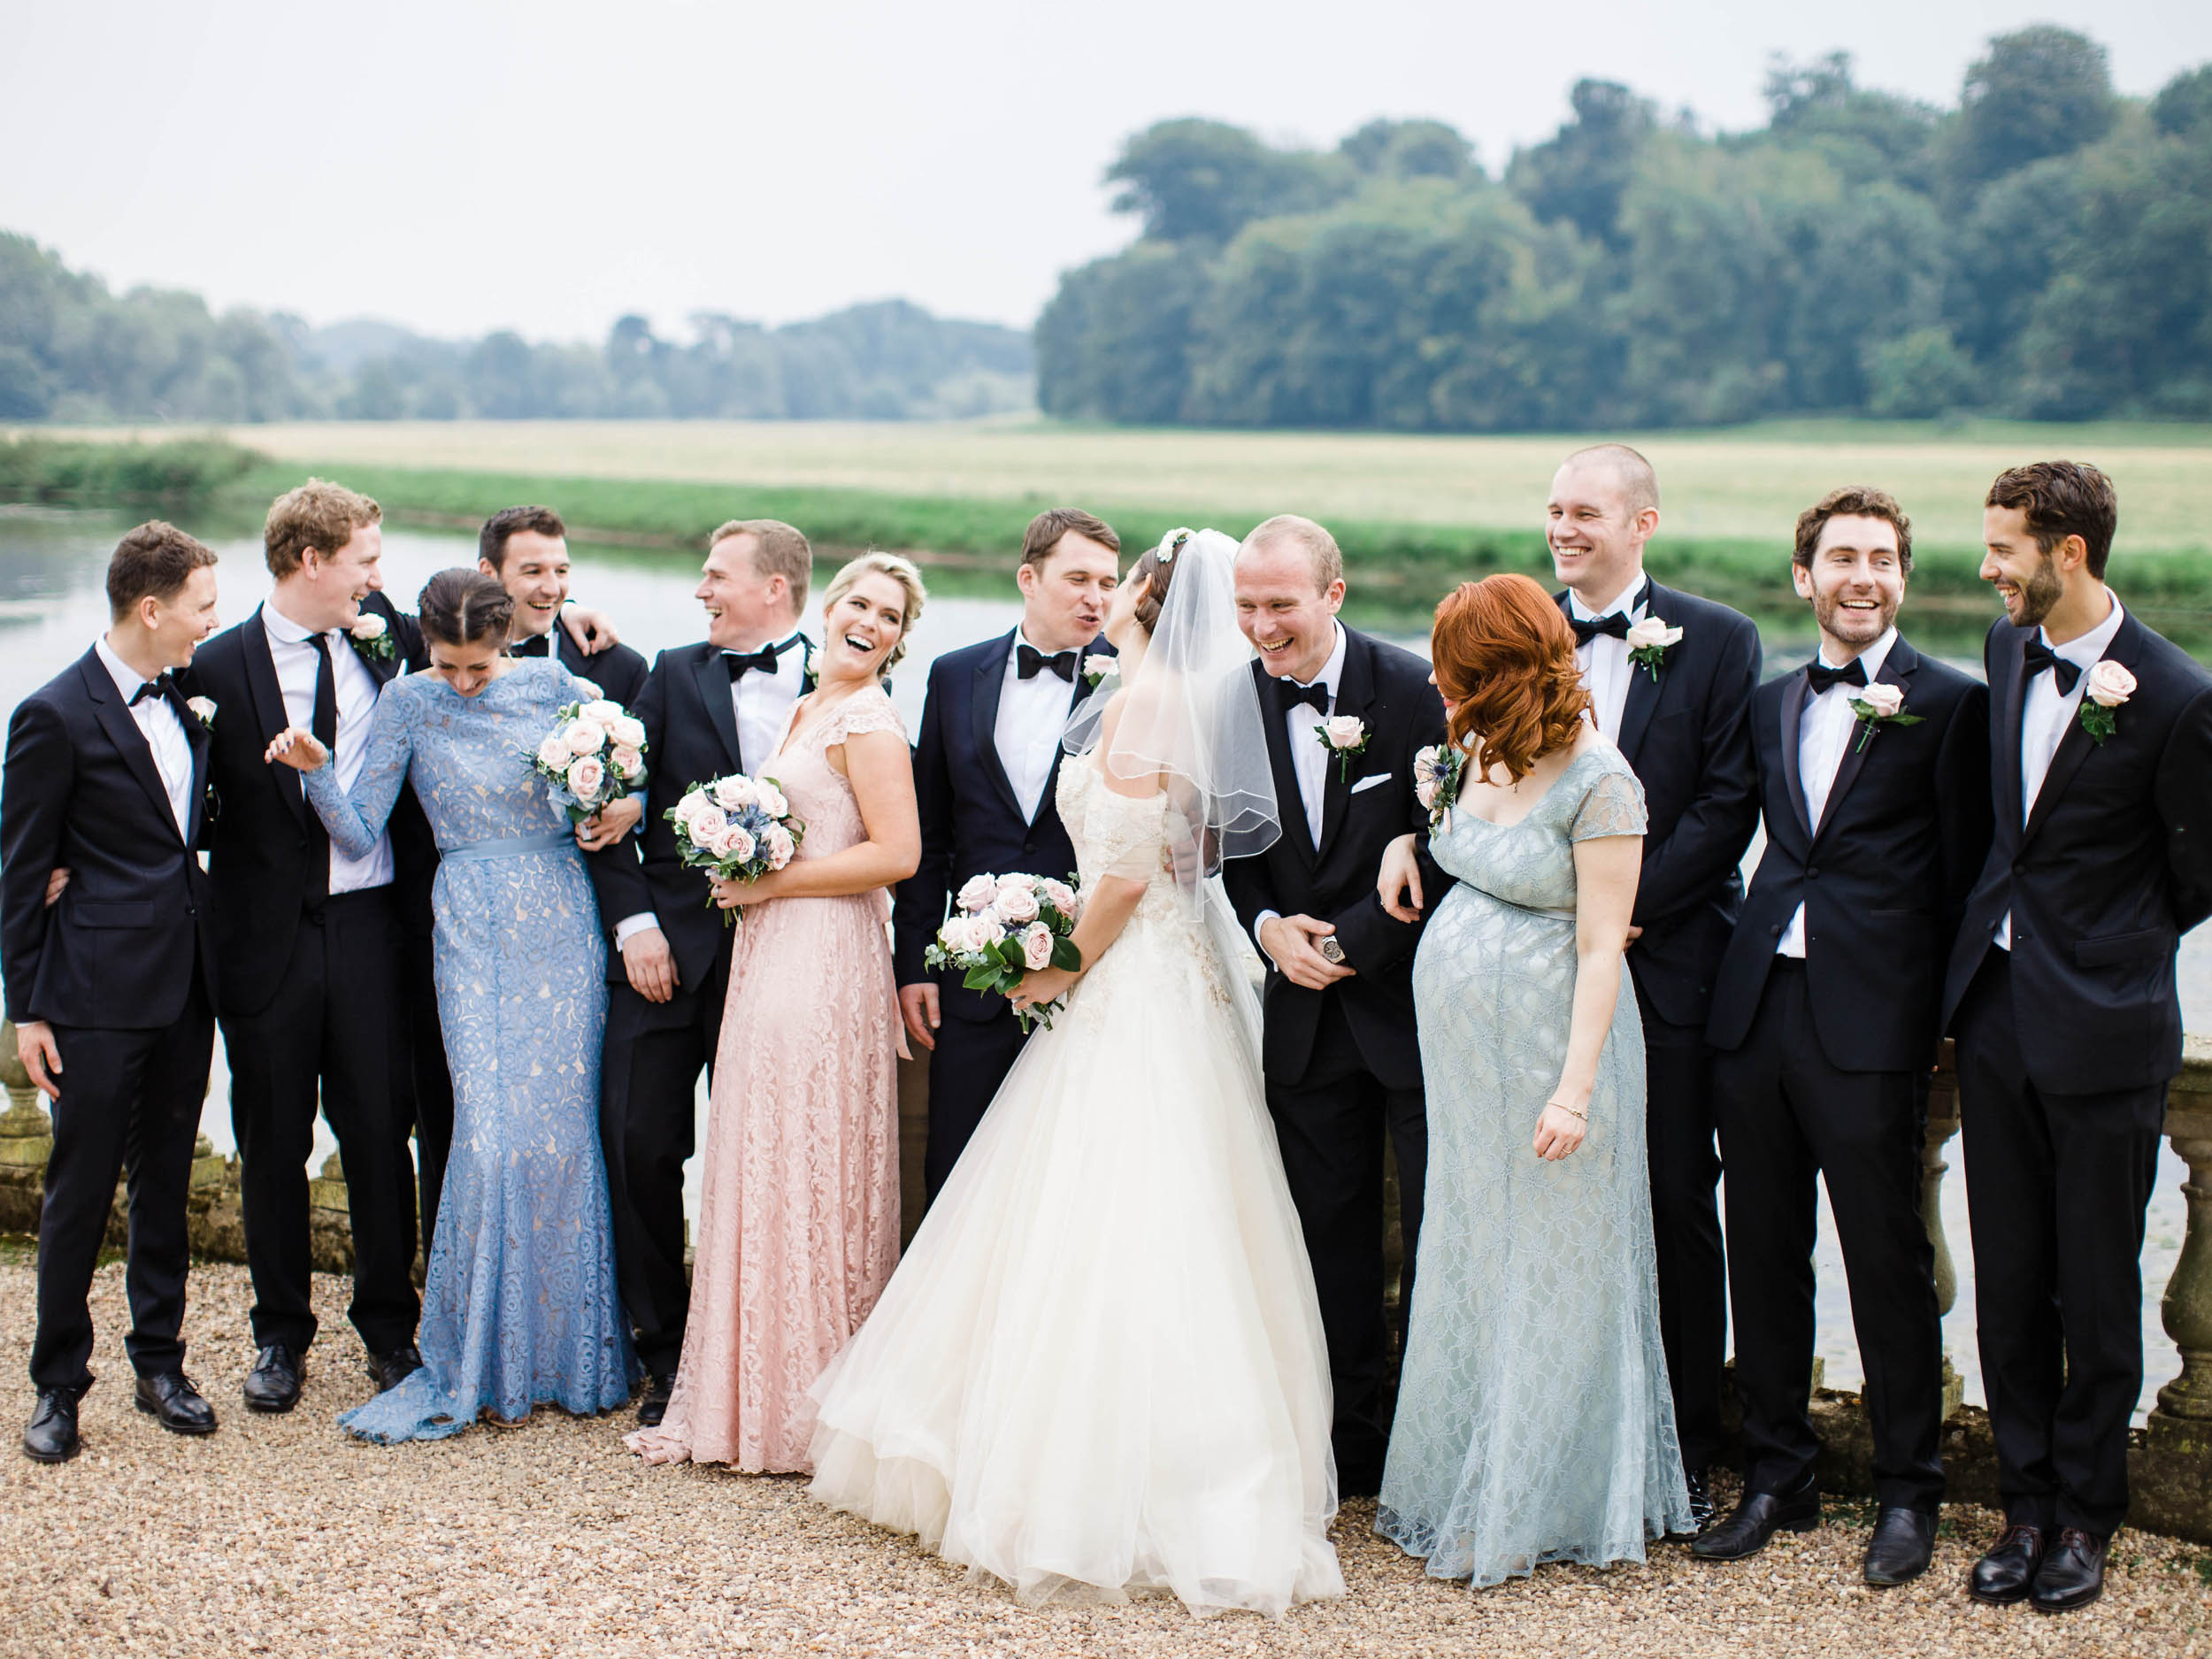 Amy O'Boyle Photography- Destination & UK Fine Art Film Wedding Photographer- Stoneleigh Abbey Wedding-11.jpg